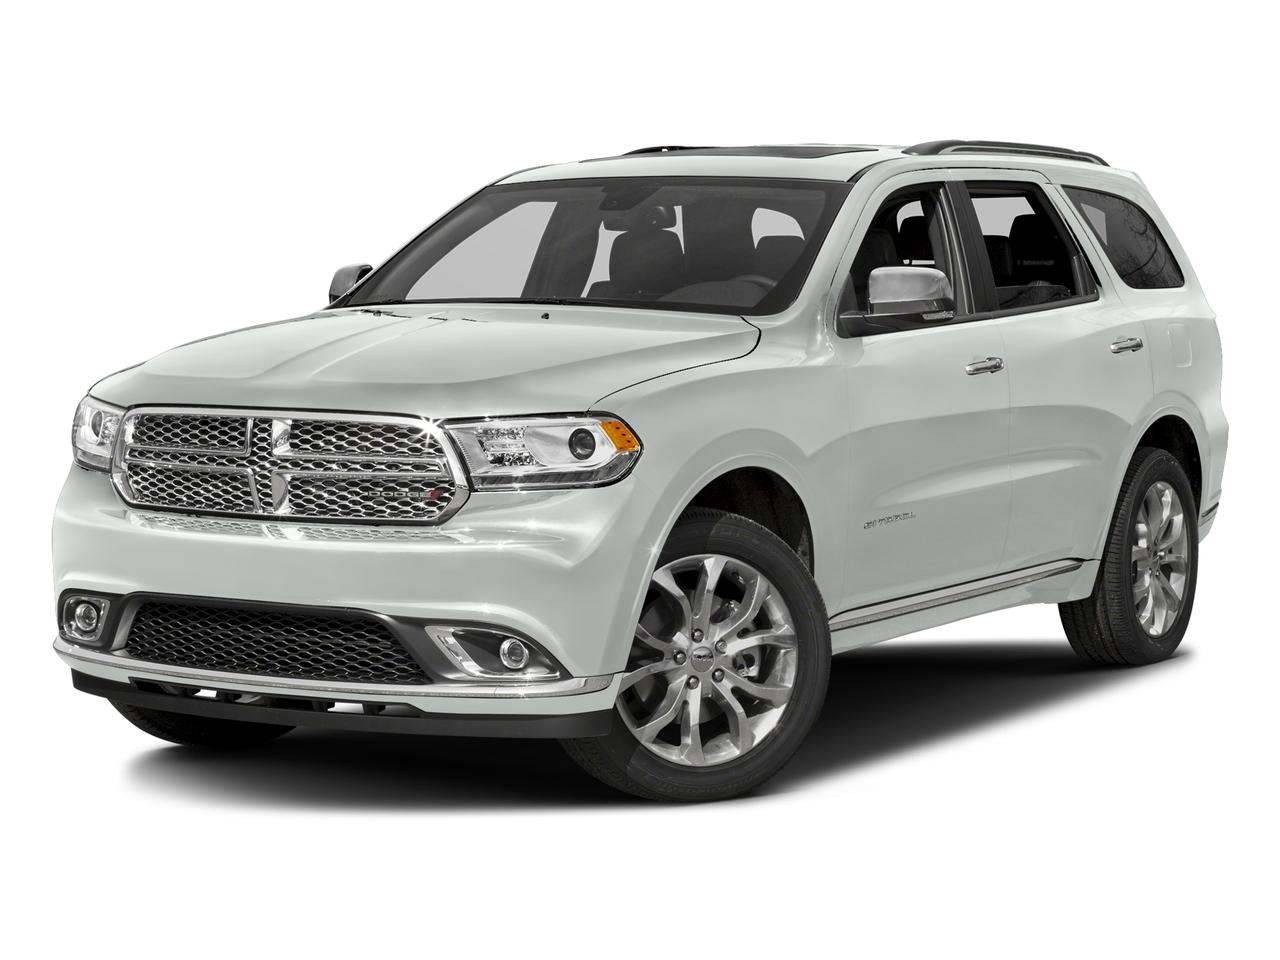 2016 Dodge Durango Vehicle Photo in Pleasanton, CA 94588